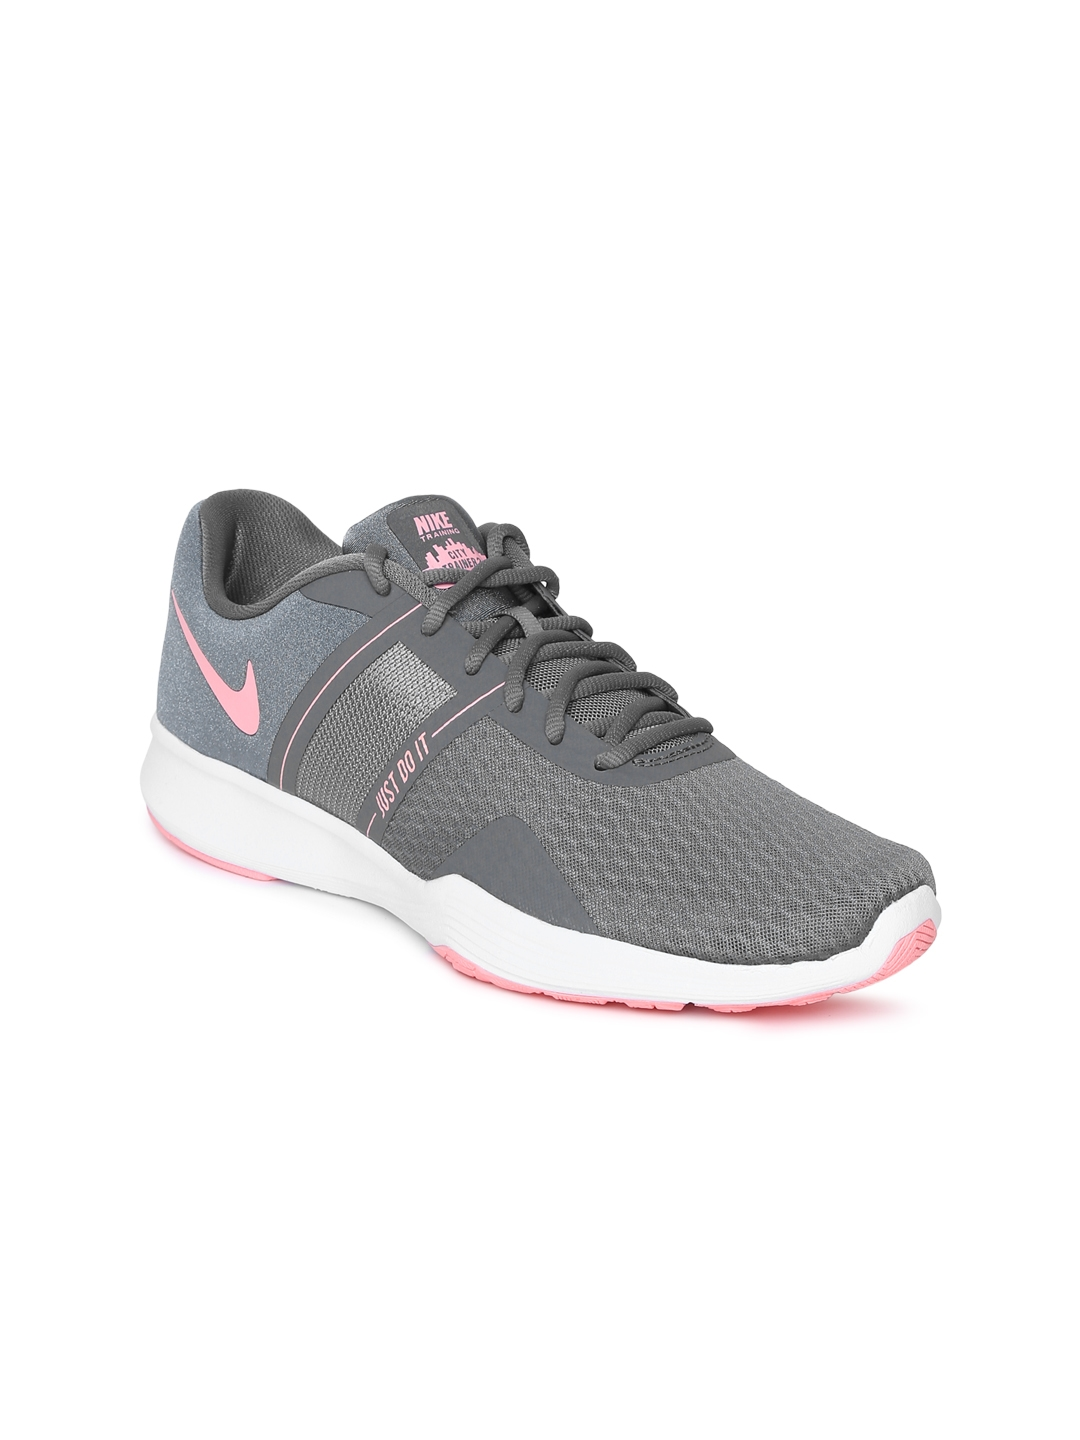 factory price e1fa3 963ca Nike Women Grey   Pink CITY TRAINER 2 Training Shoes